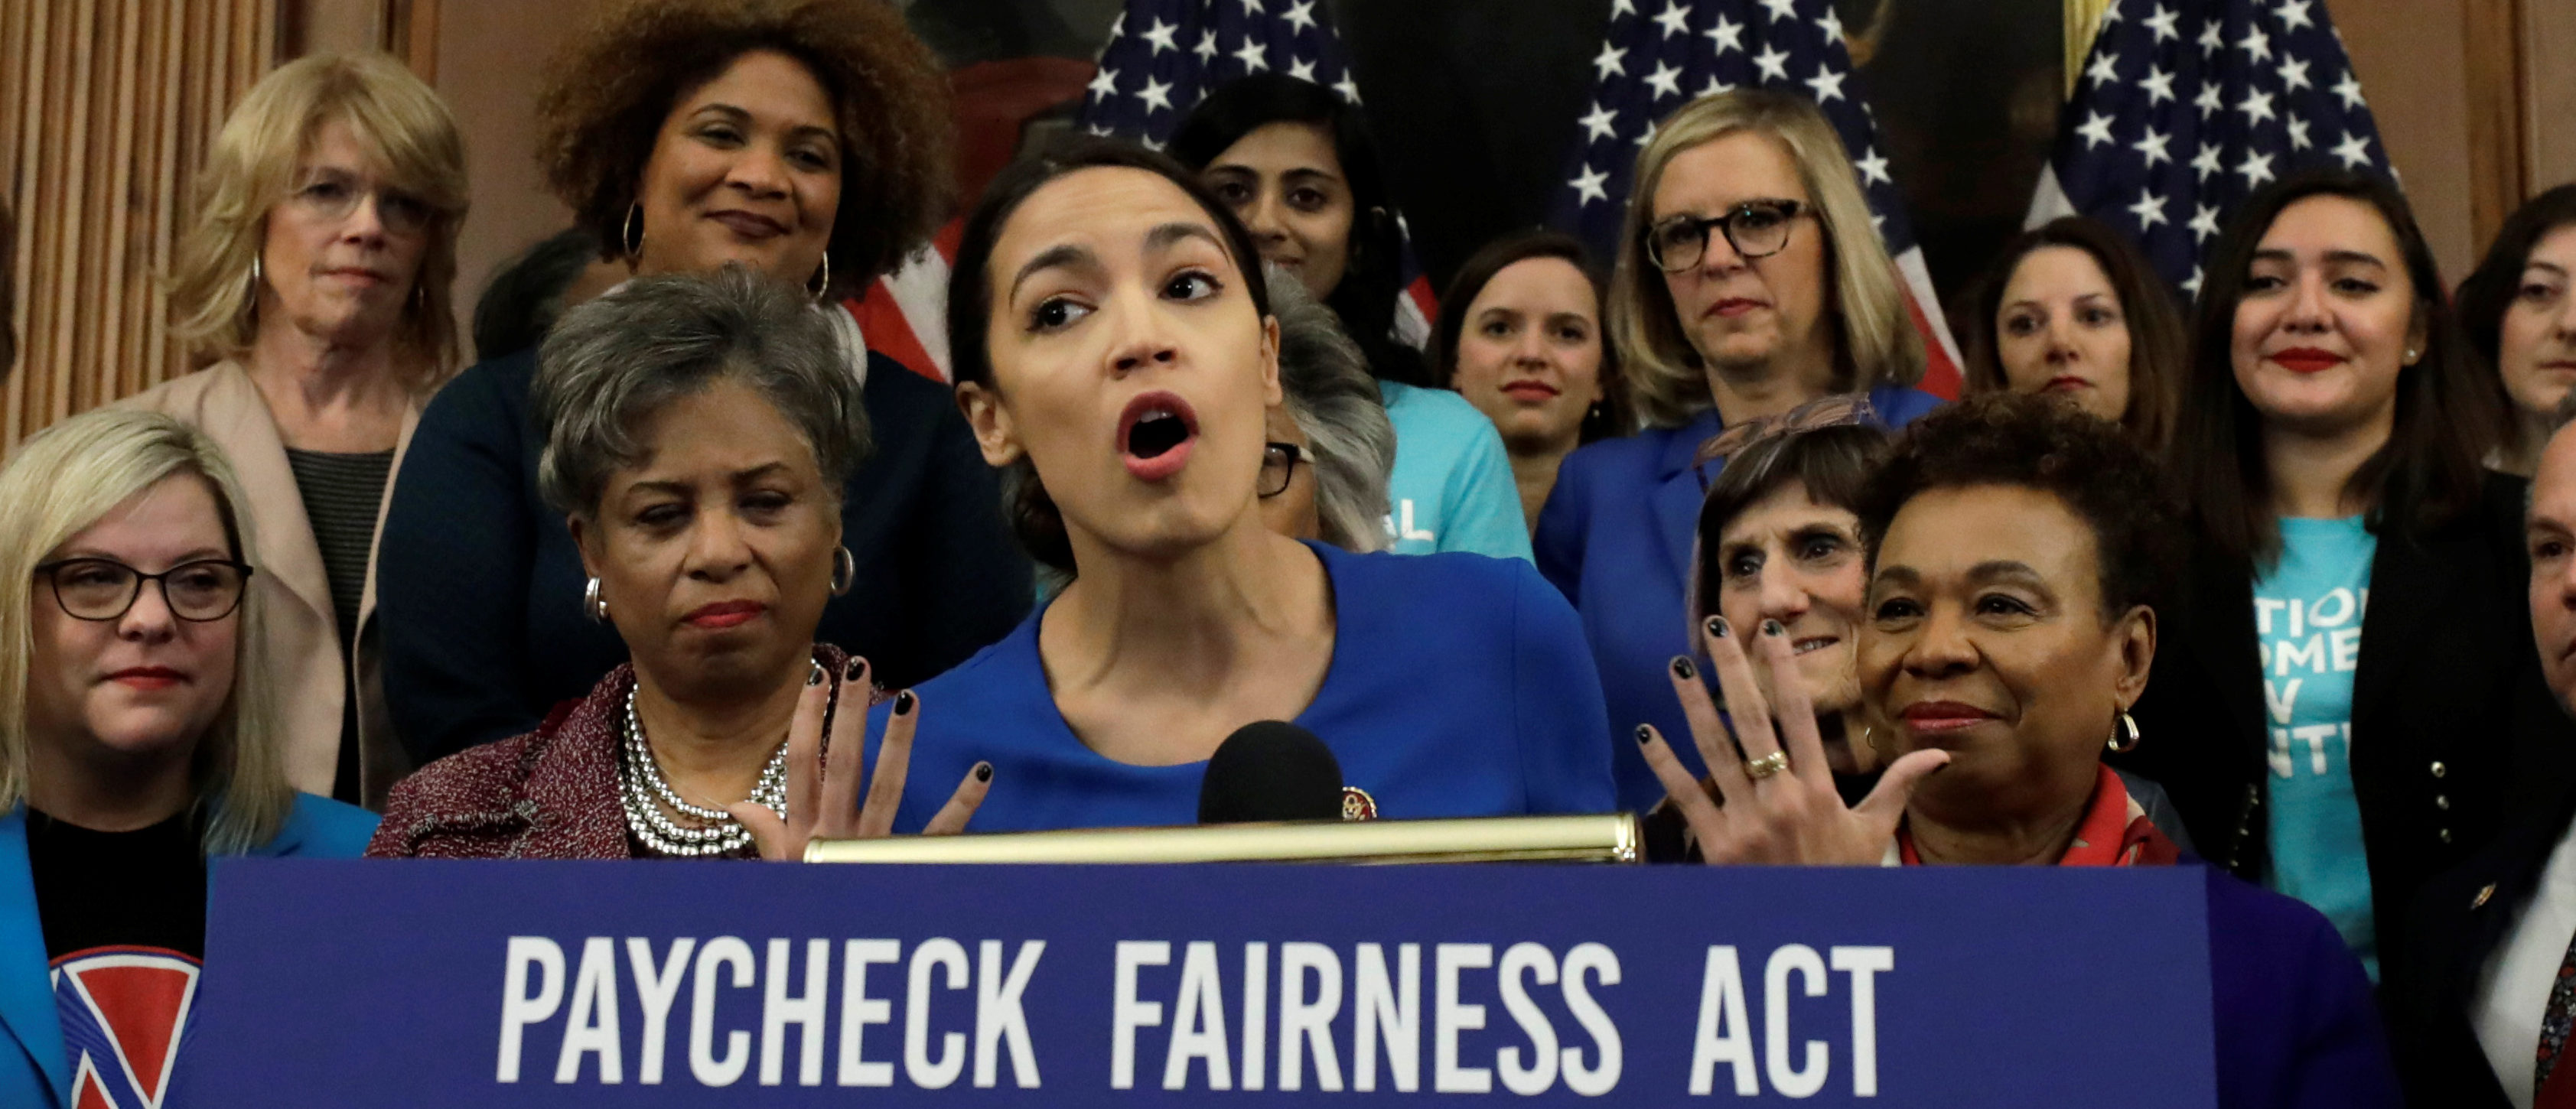 """U.S. Rep. Alexandria Ocasio-Cortez (D-NY) speaks at House Democrats news conference to reintroduce the H.R.7 """"Paycheck Fairness Act"""" on Capitol Hill in Washington, U.S., January 30, 2019. REUTERS/Yuri Gripas"""